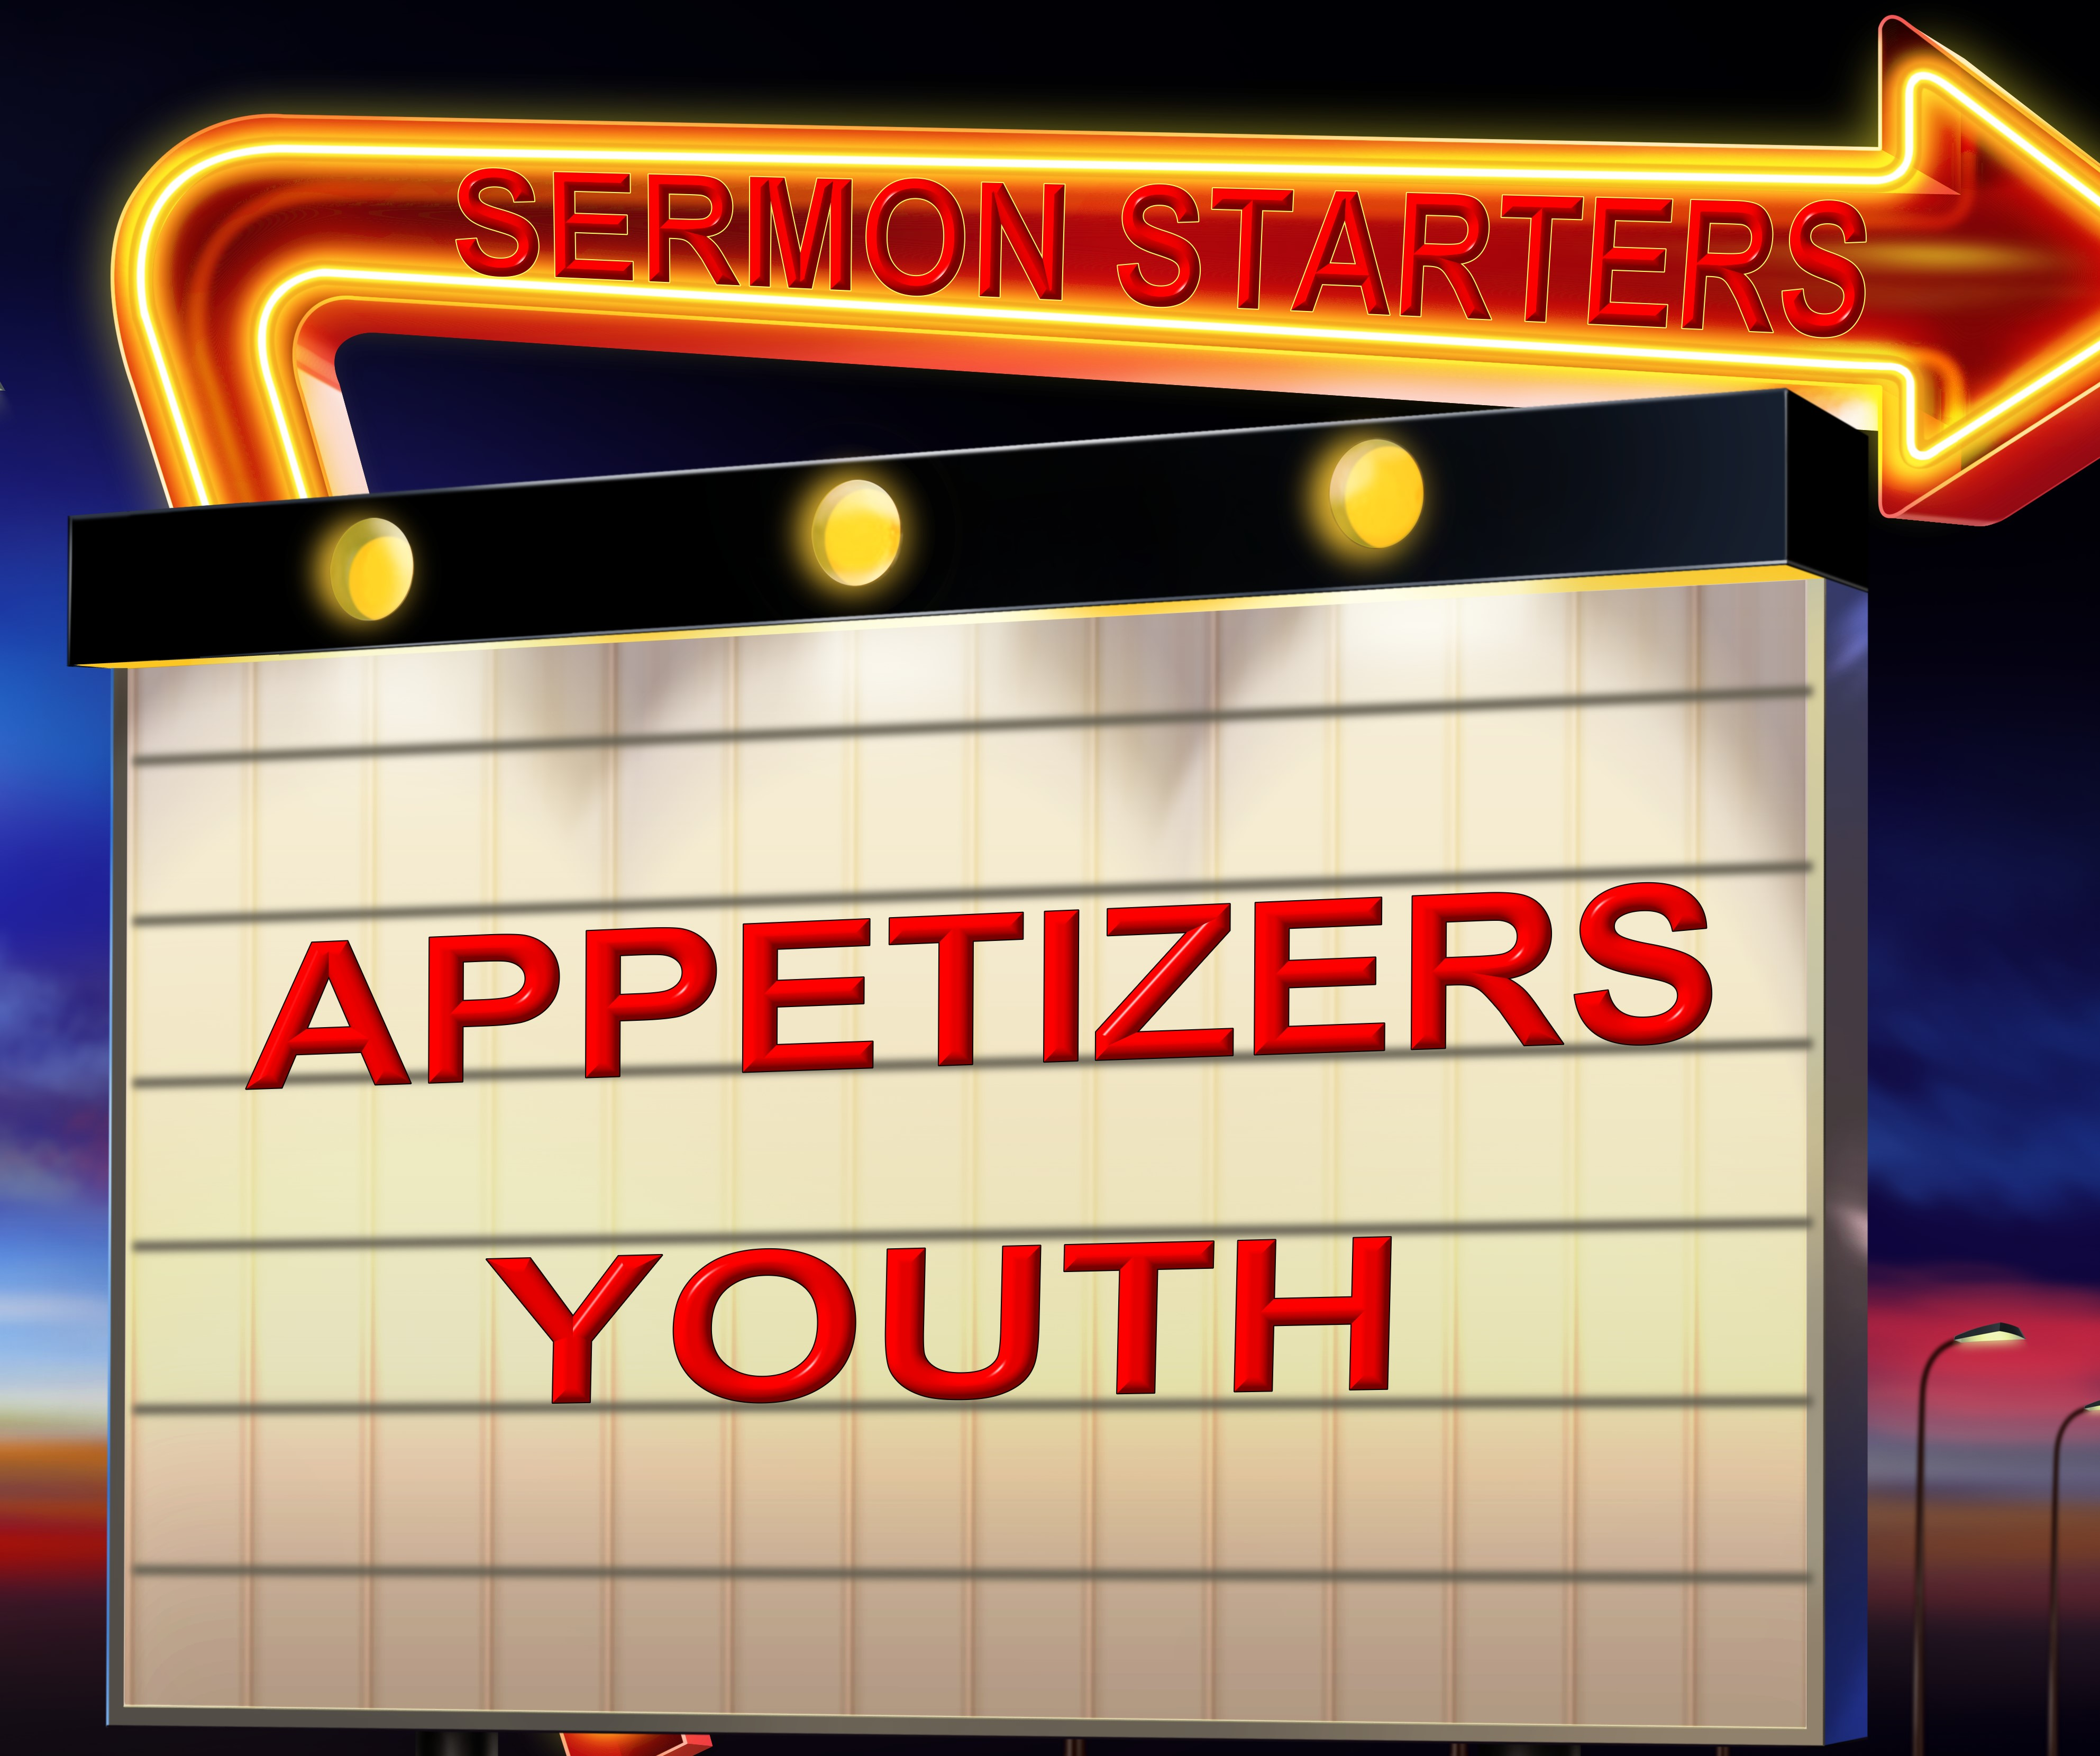 Appetizers Youth